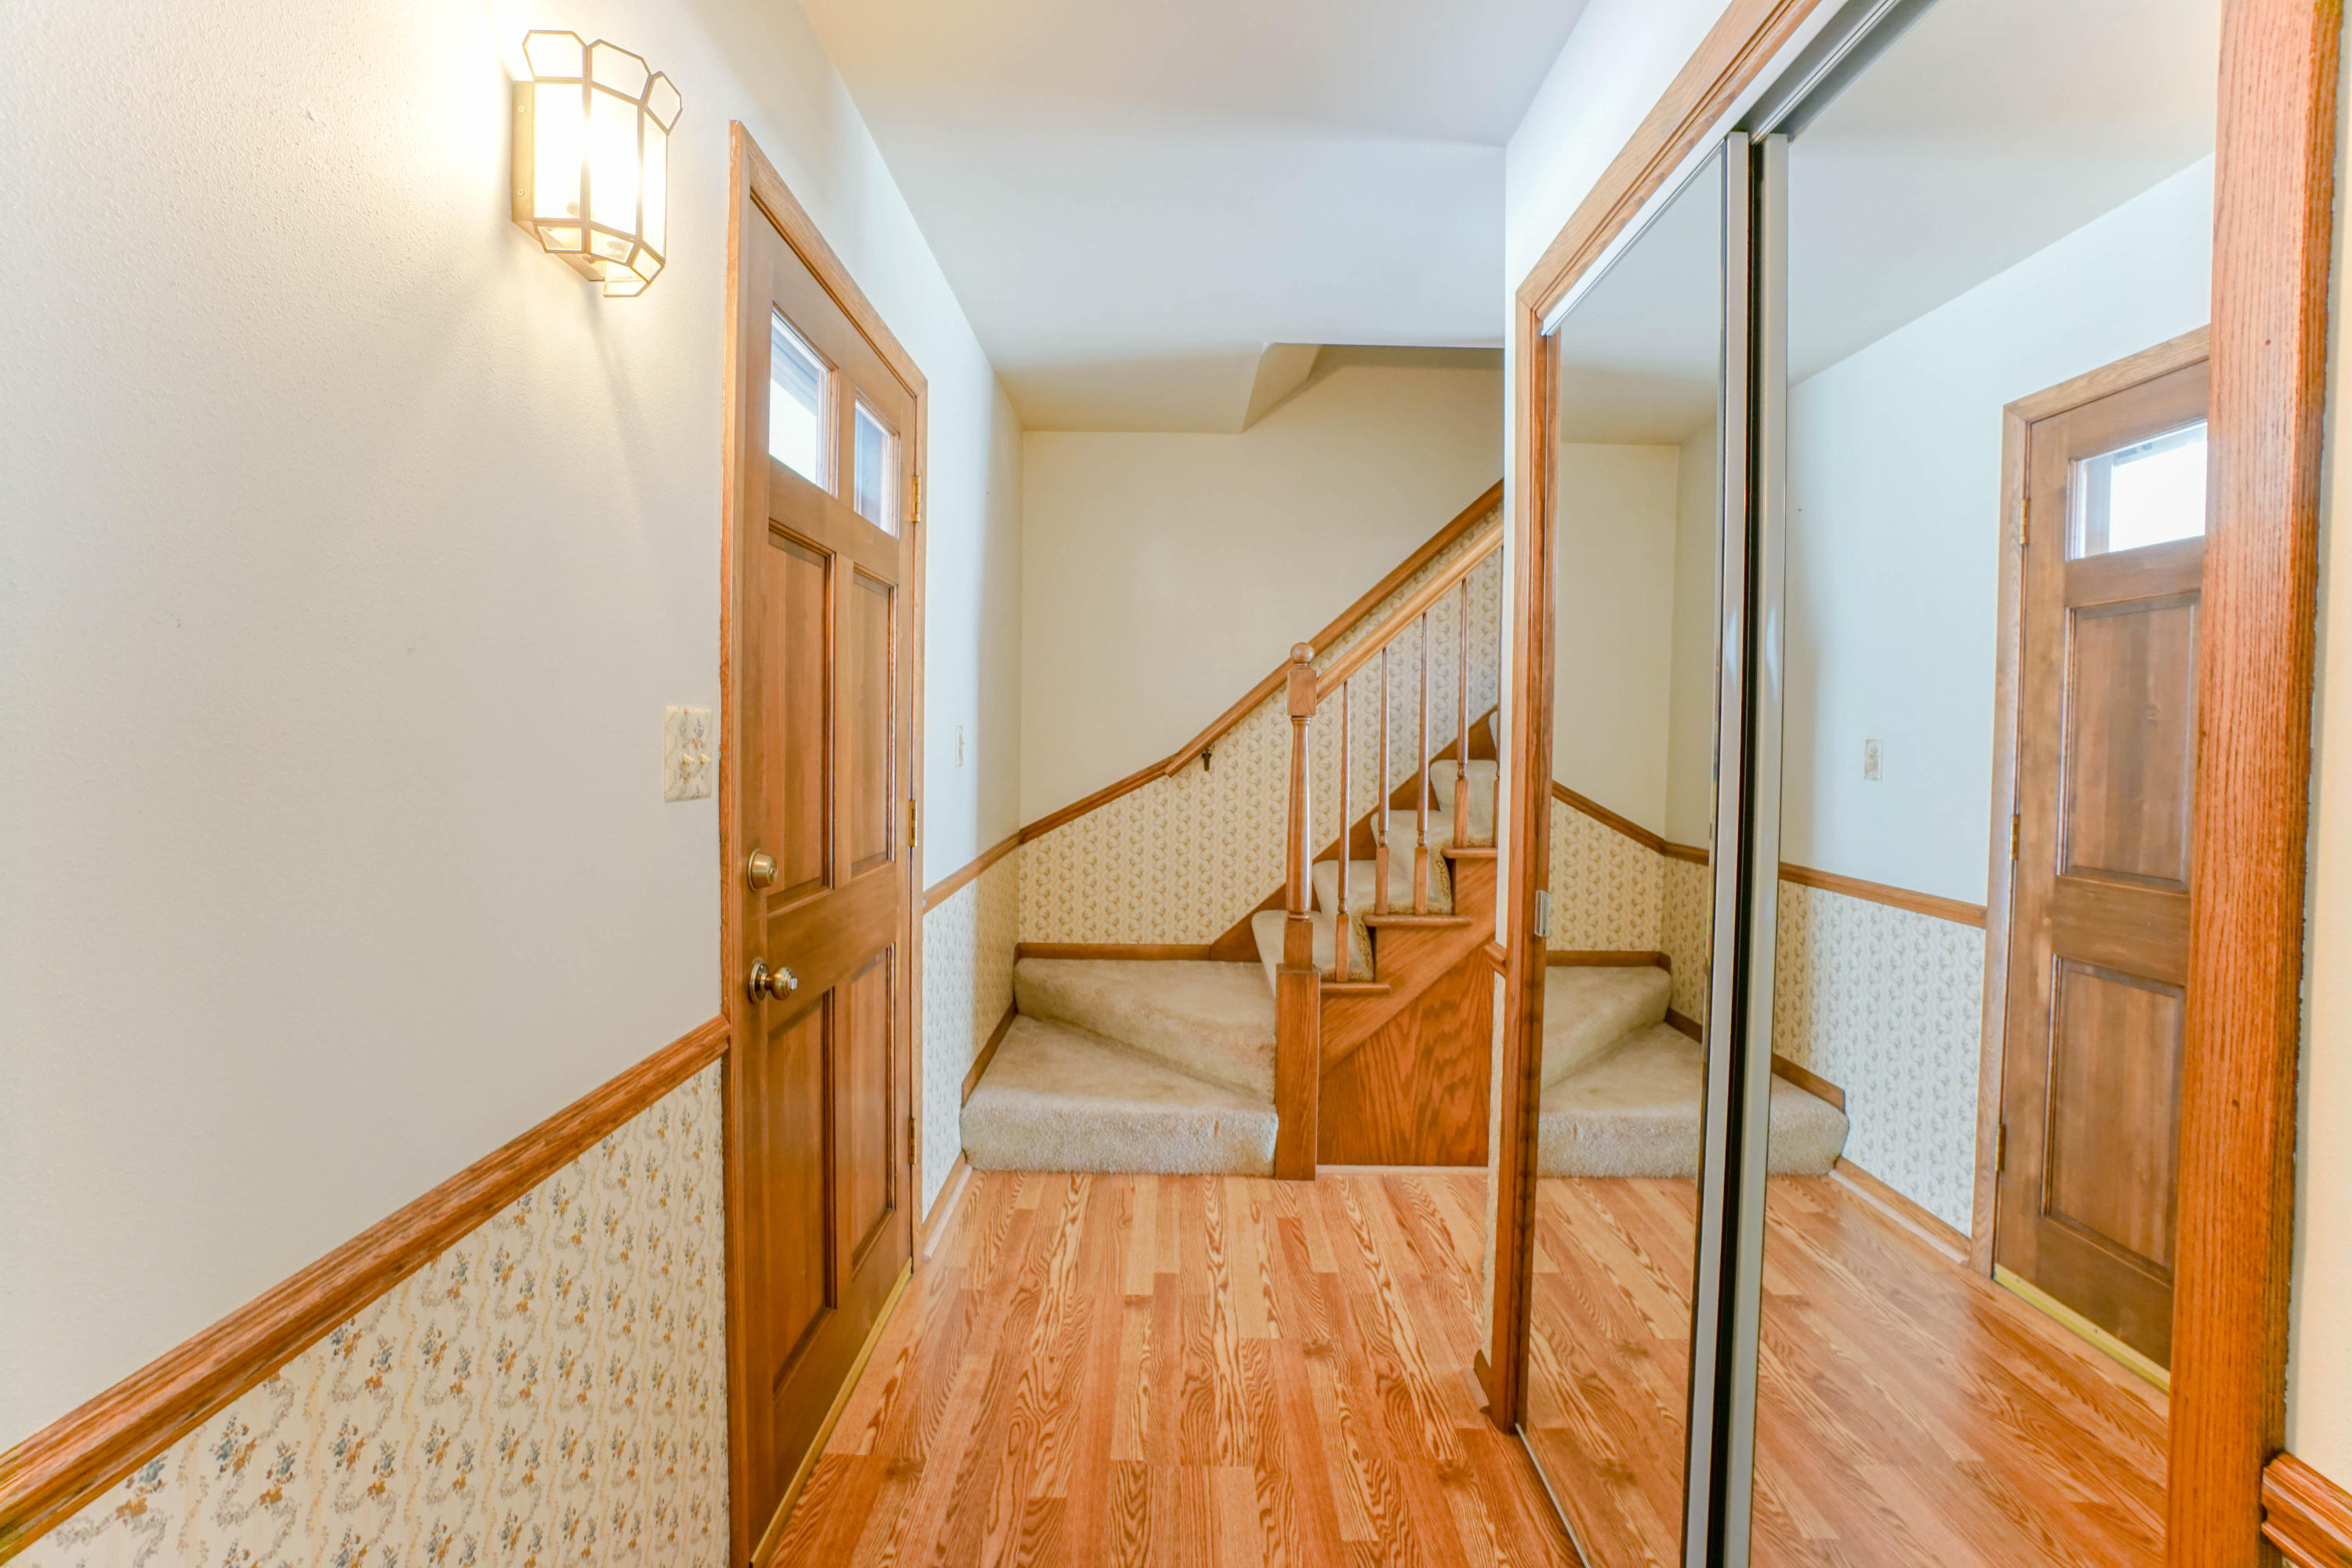 1302 Cherrywood Dr, Waukesha, Wisconsin 53188, 3 Bedrooms Bedrooms, 7 Rooms Rooms,1 BathroomBathrooms,Single-Family,For Sale,Cherrywood Dr,1618460